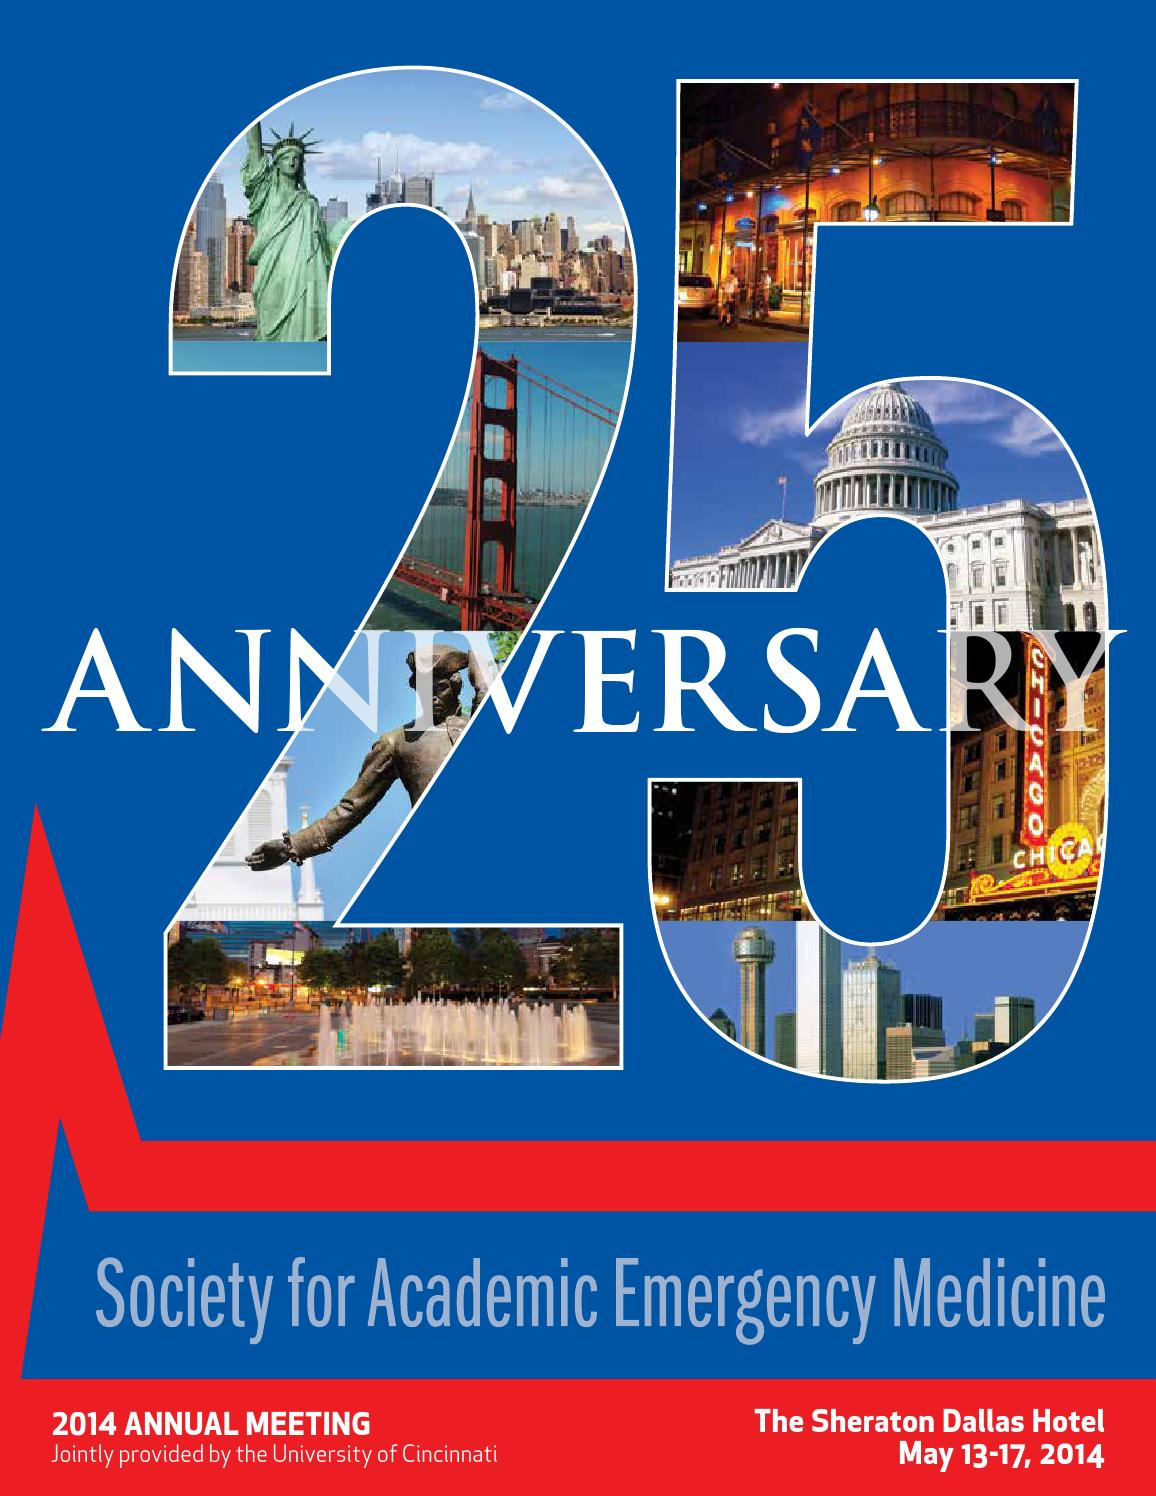 SAEM 2014 Annual Meeting Program by Society for Academic